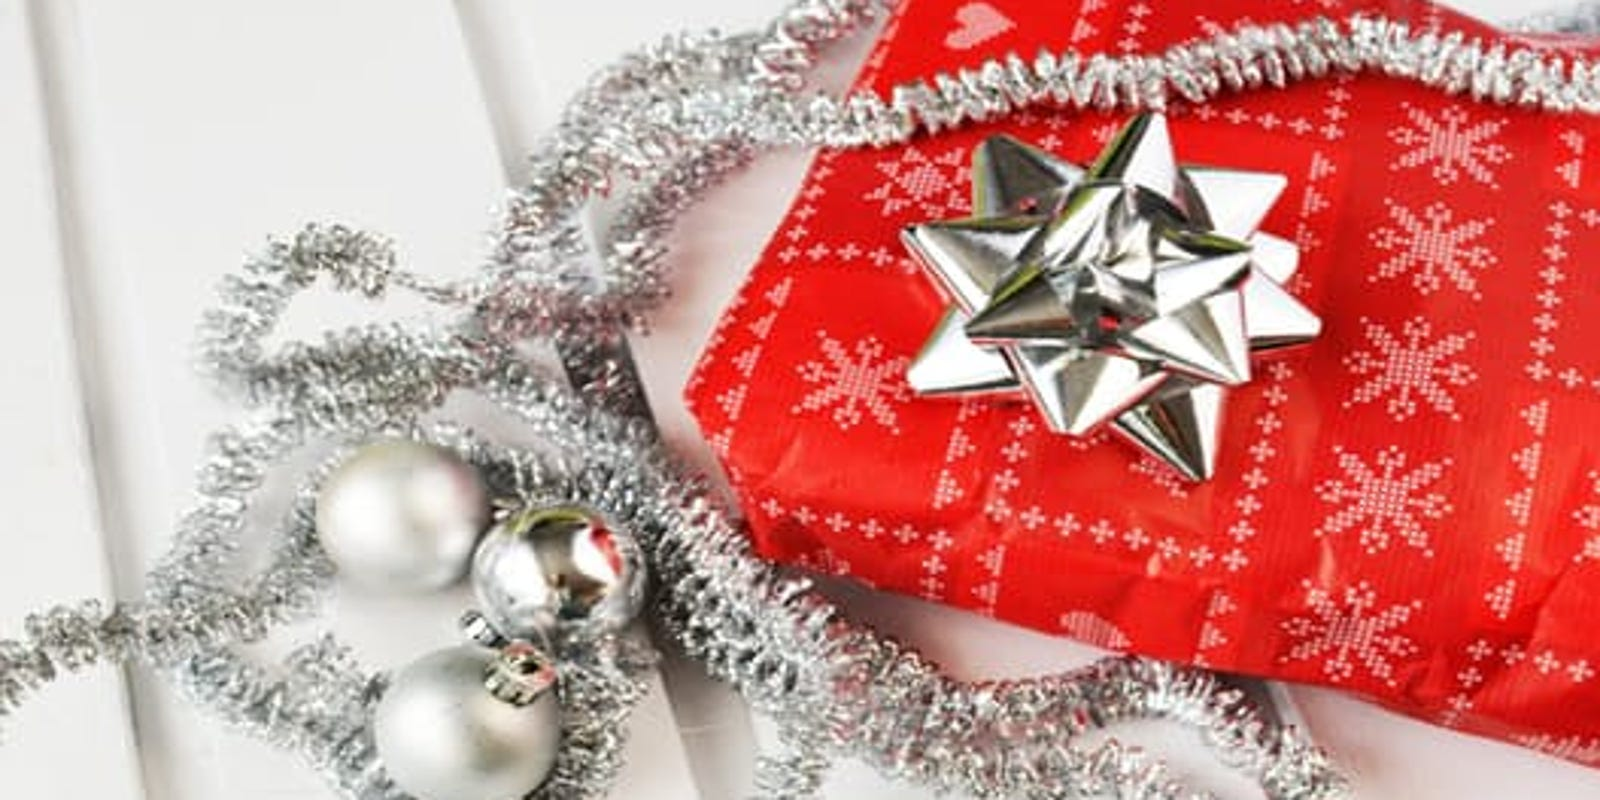 Missing Dad At Christmas.Oped Missing Dad And Taking Stock This Christmas